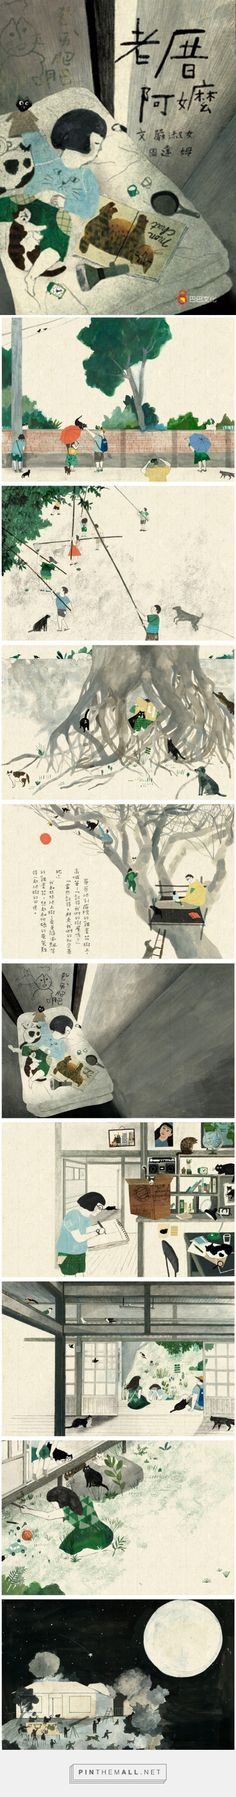 Our old house | Chia-Chi Yu